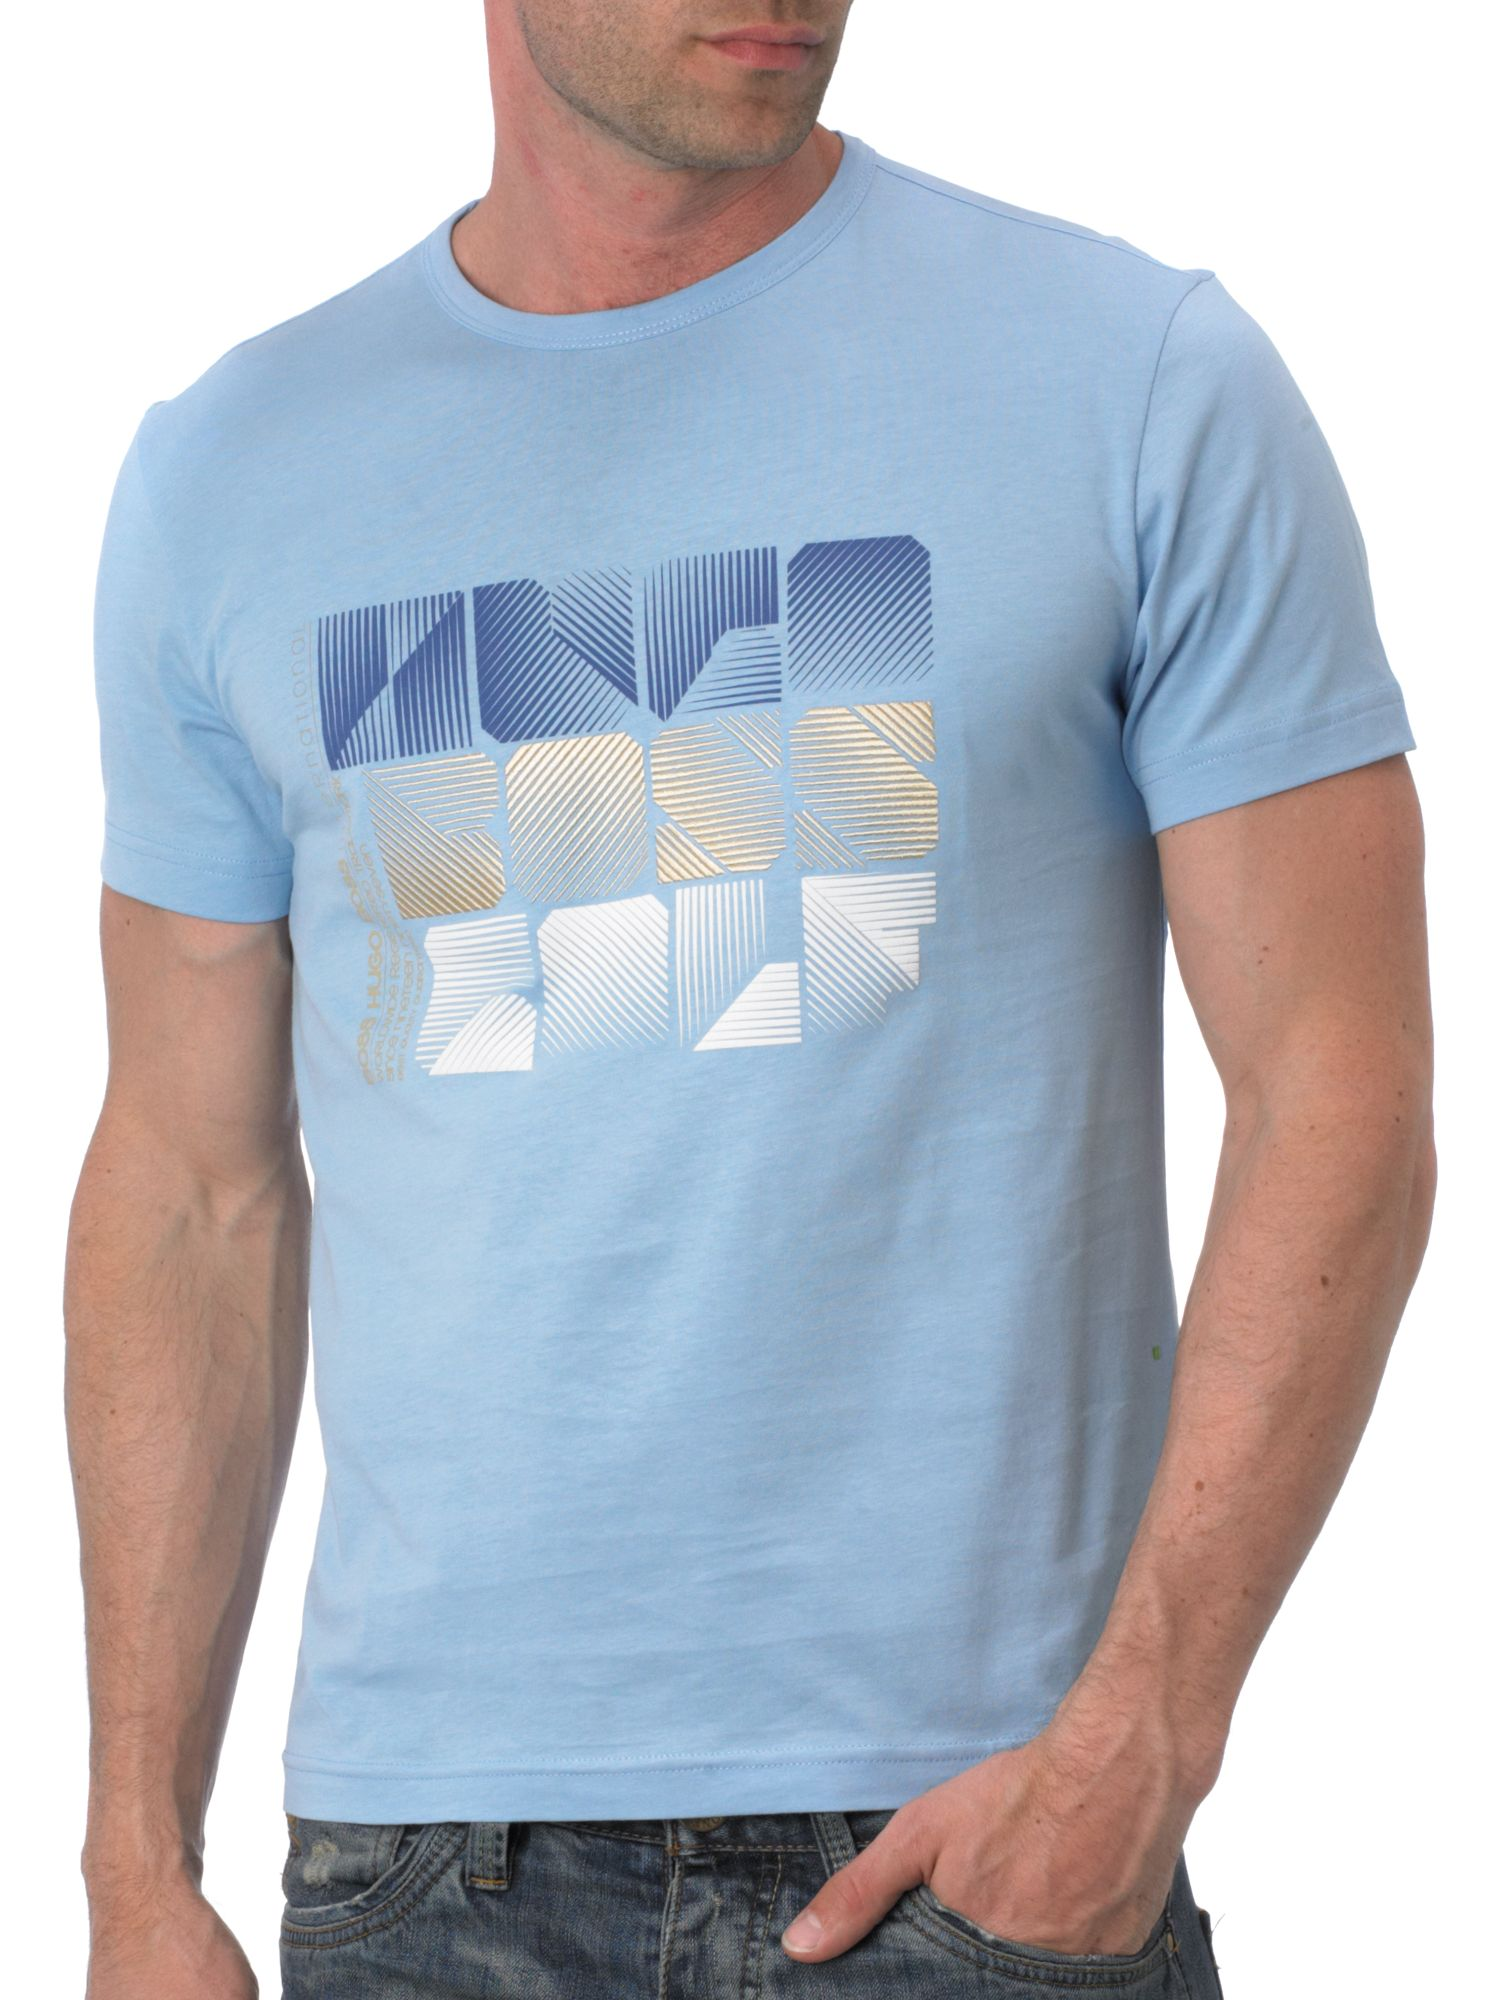 Hugo Boss Square Logo T-Shirt product image